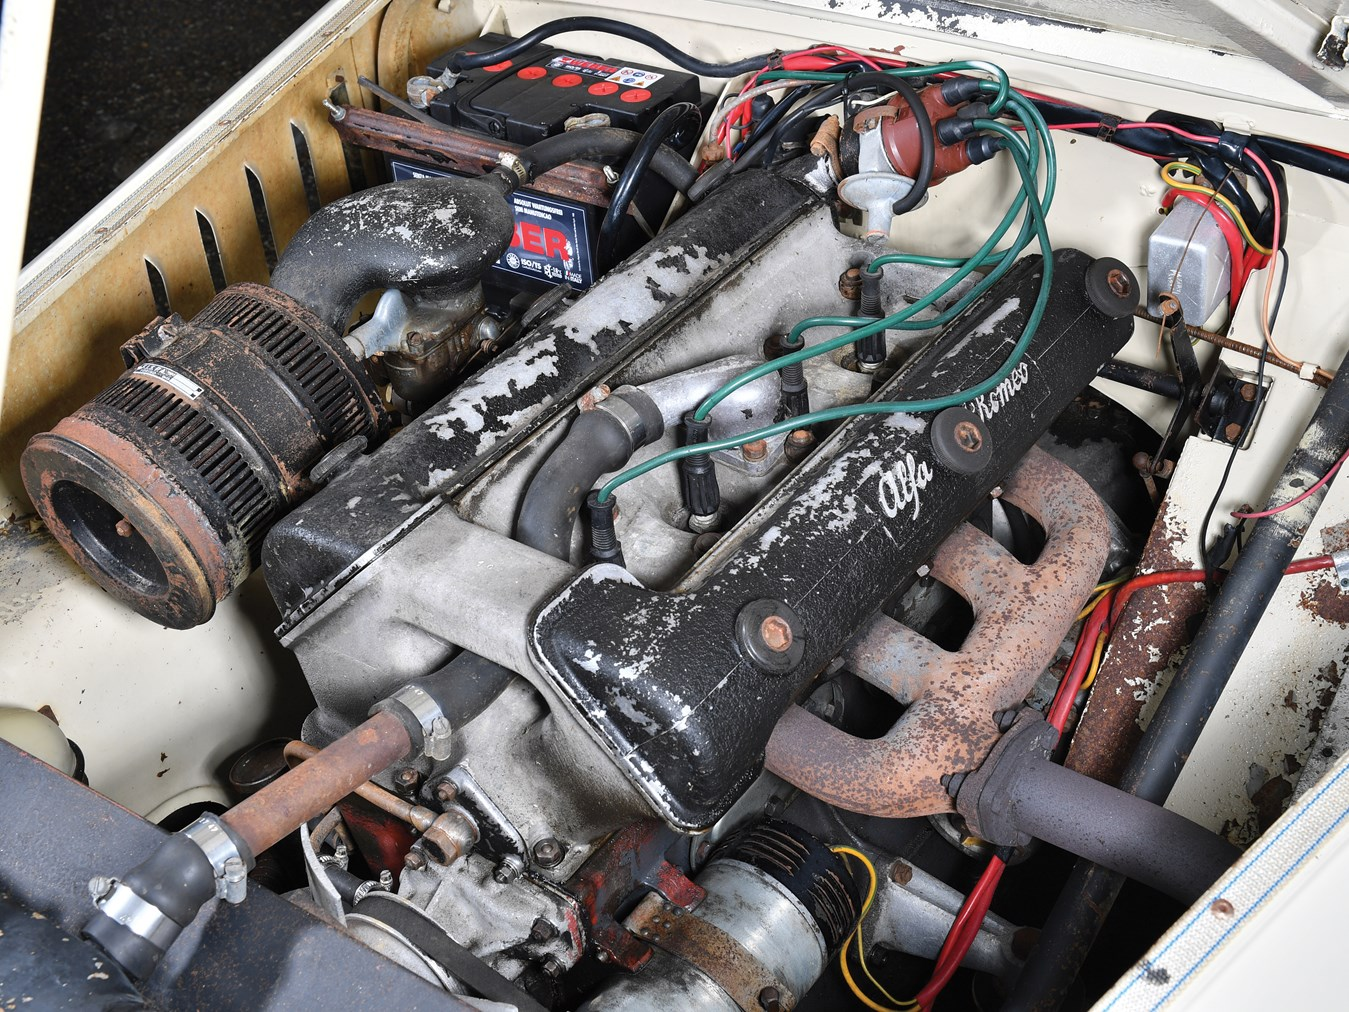 The sight of a DOHC Alfa Romeo engine is not exactly what one expects to see upon opening the hood of a utilitarian 4WD.